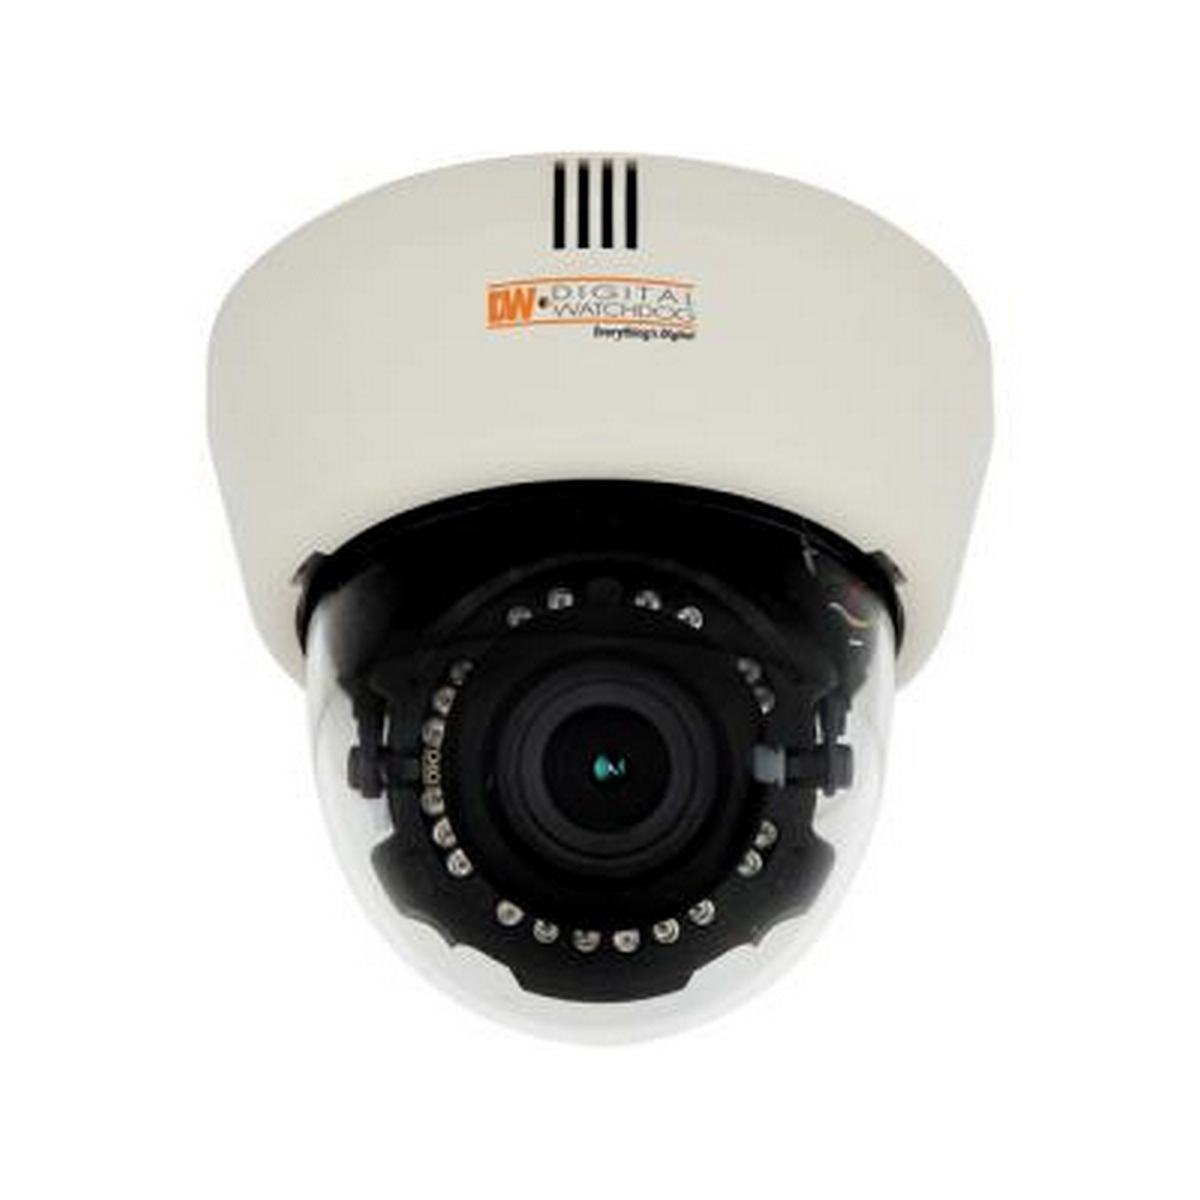 Digital Watchdog MD421TIR  2MP Indoor IR IP Dome camera